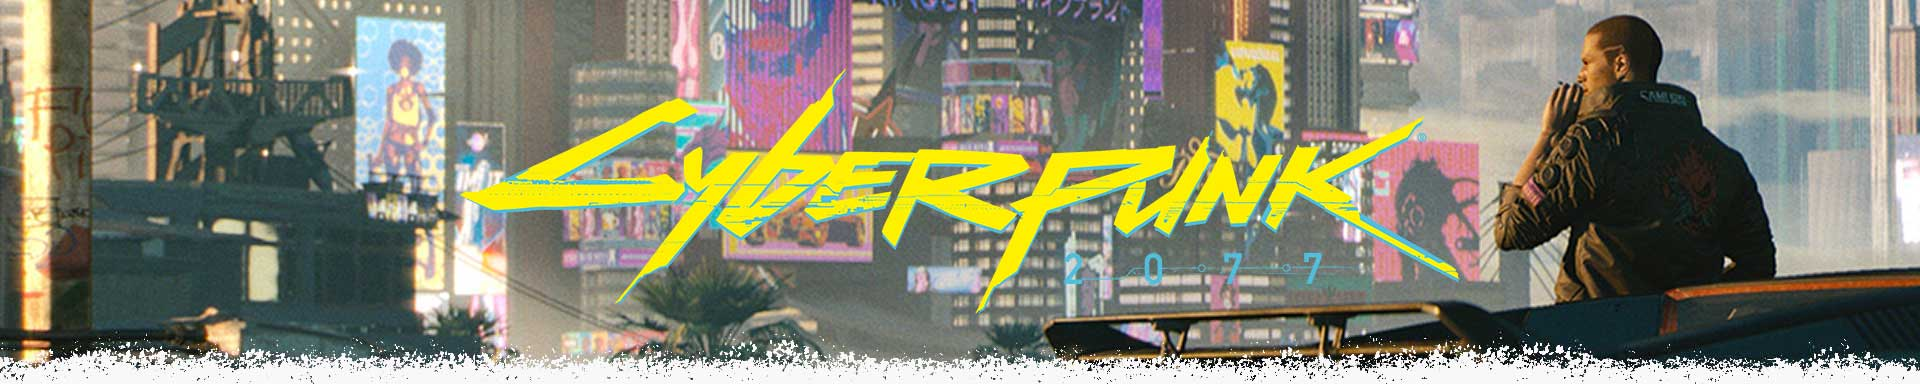 cyberpunk 2077 background kat 2021